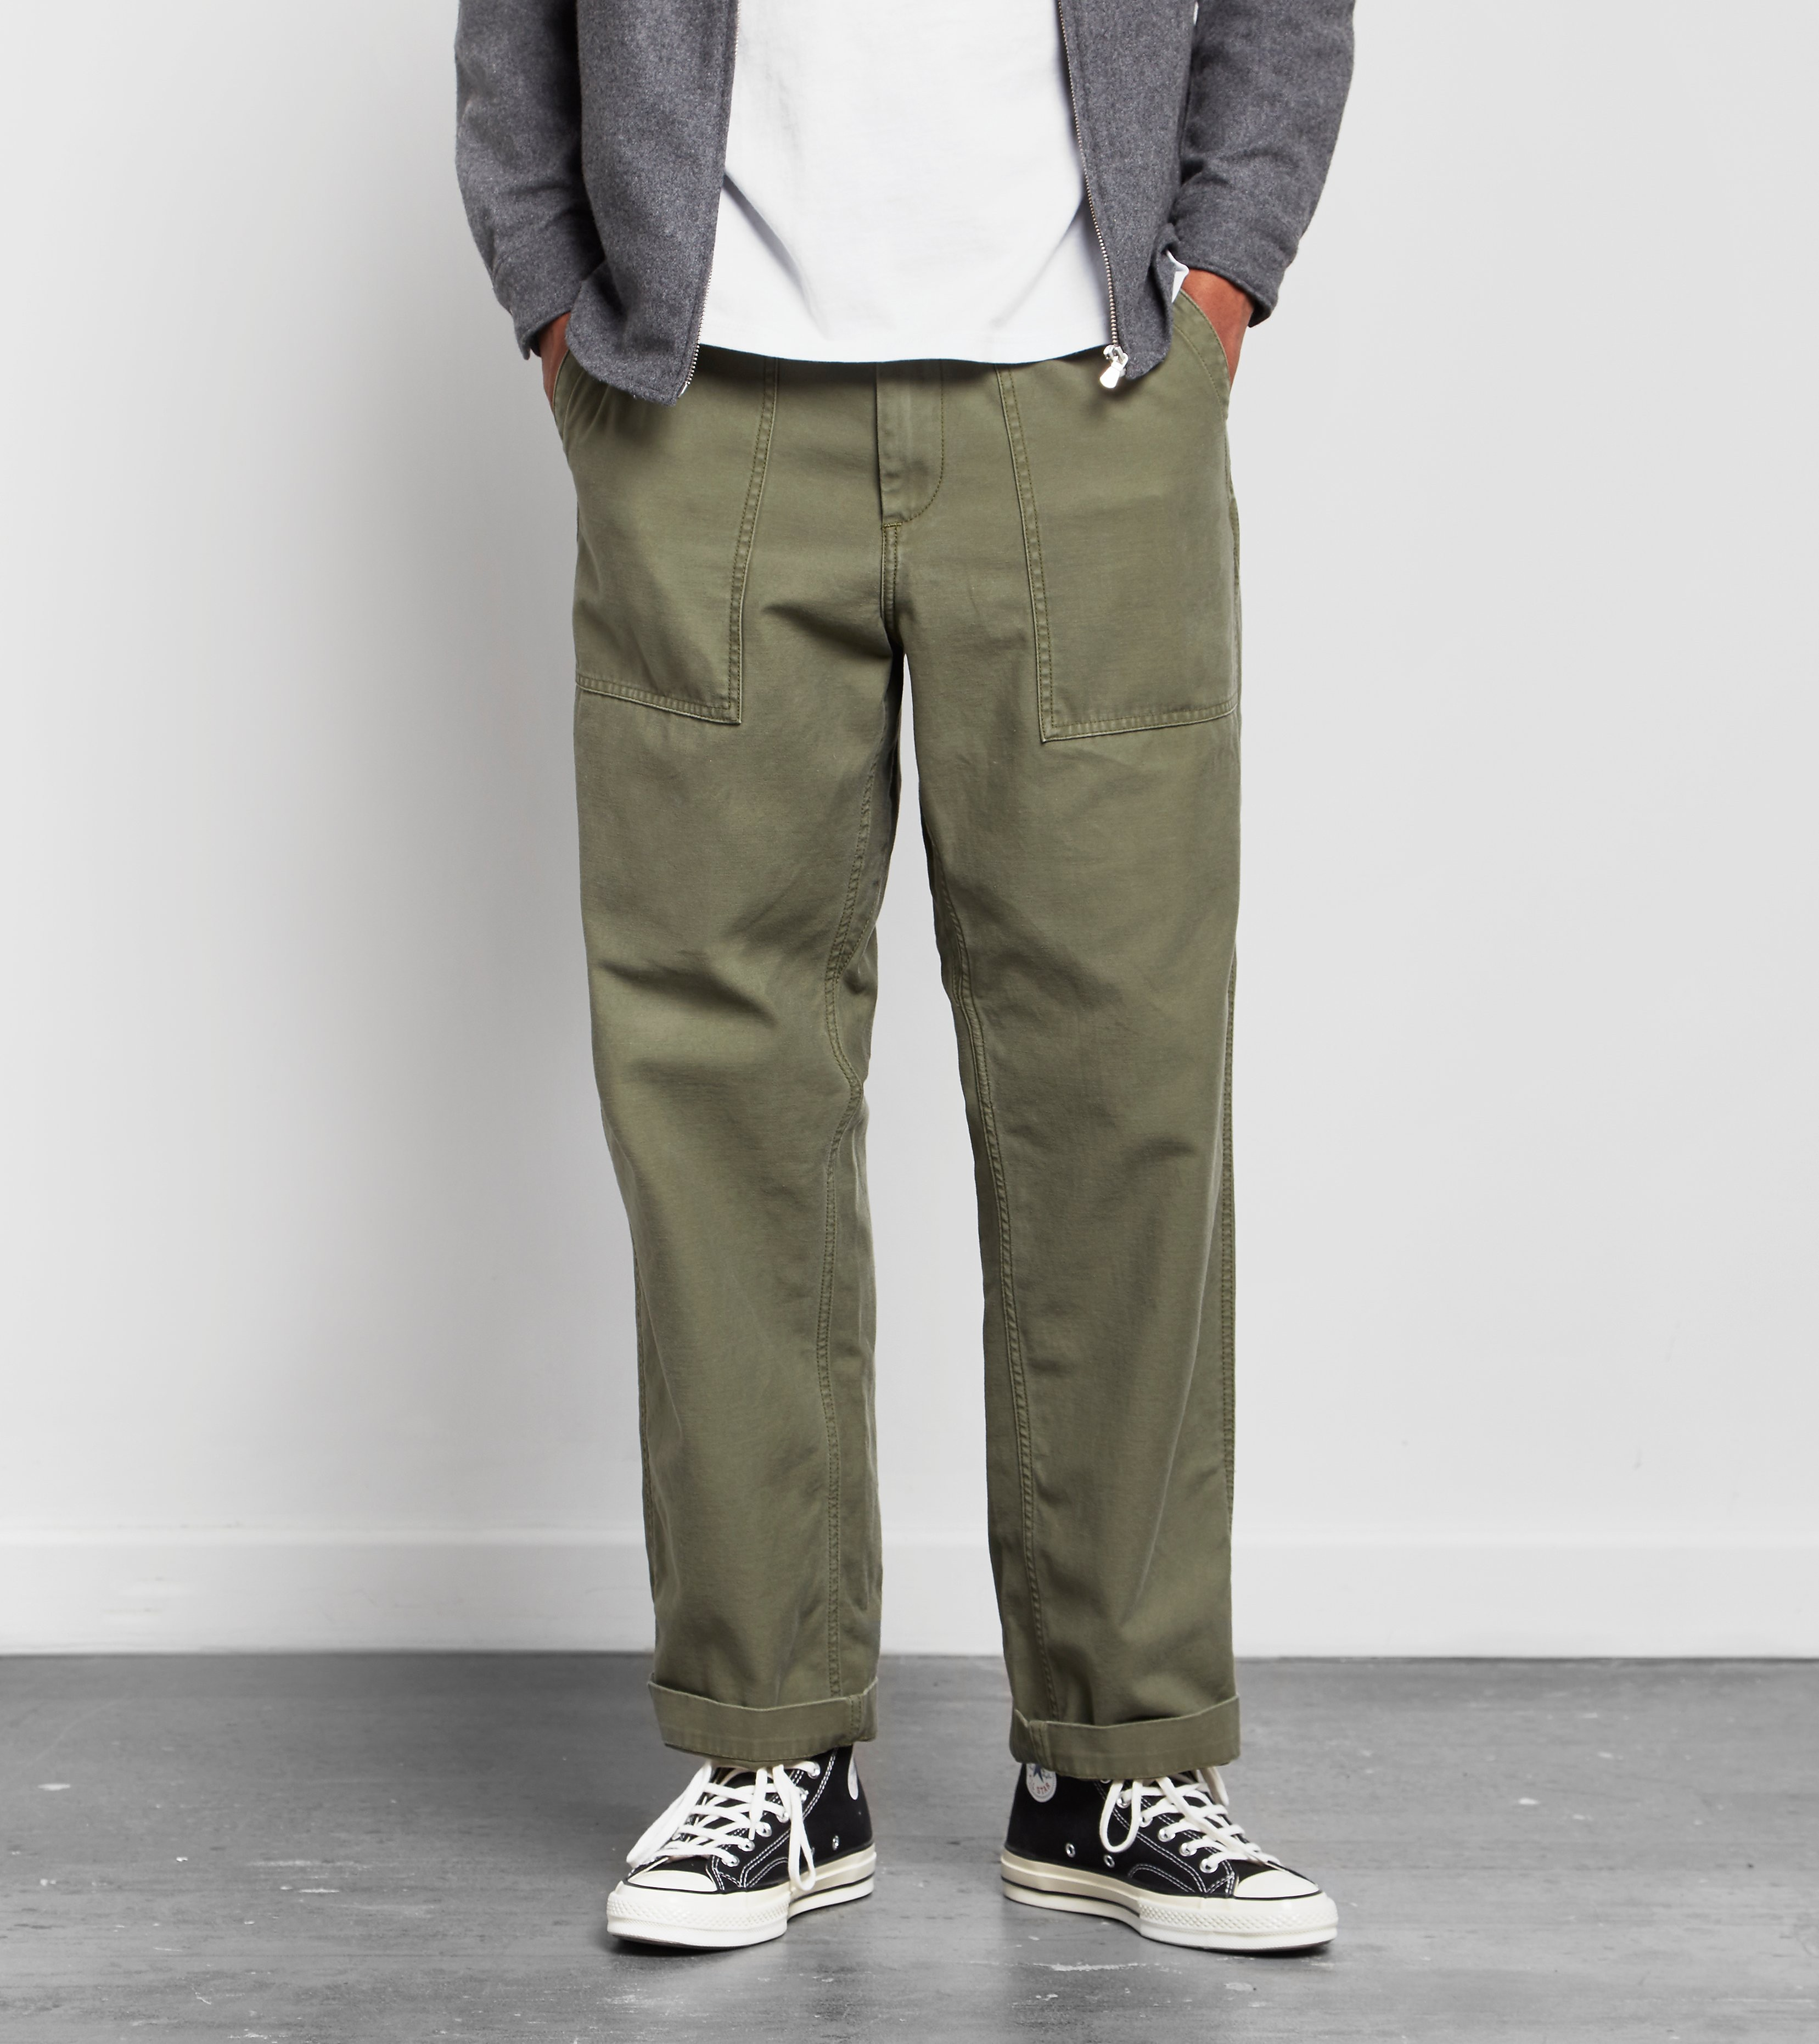 Carhartt WIP Fatigue Trousers